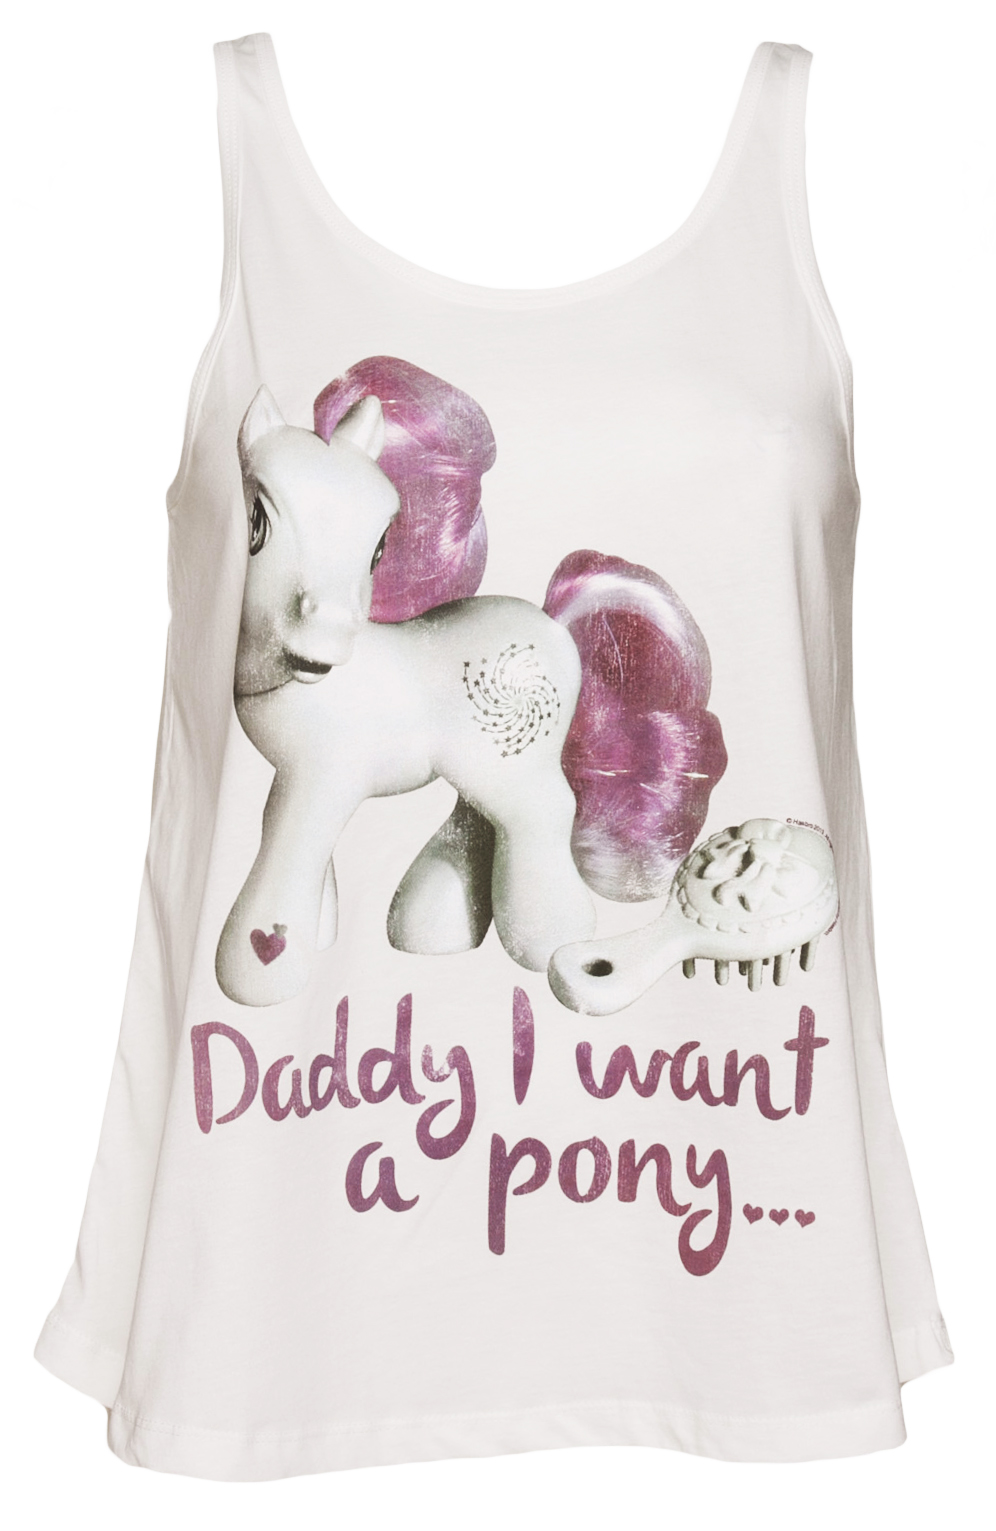 Ladies Daddy I Want A Pony Swing Vest £19.99